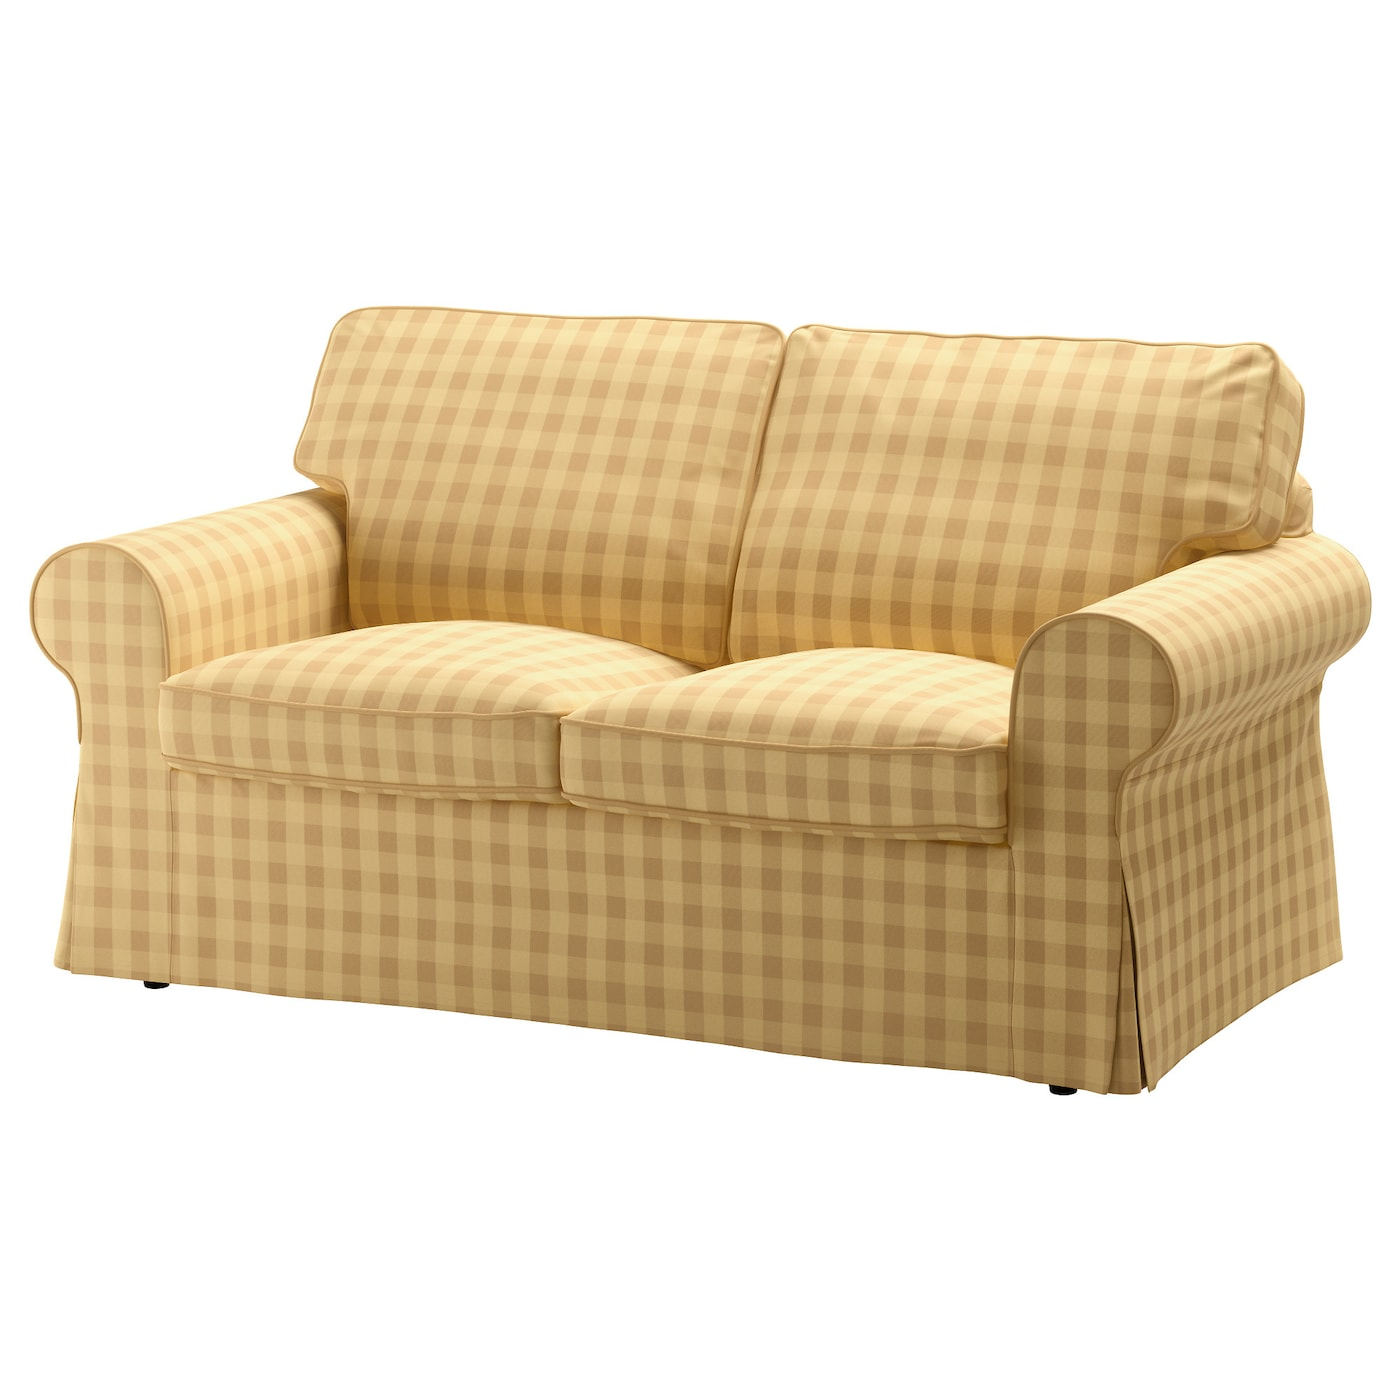 ikea yellow sofa vimle 3 seat sofa with chaise longue gr sbo golden yellow thesofa. Black Bedroom Furniture Sets. Home Design Ideas